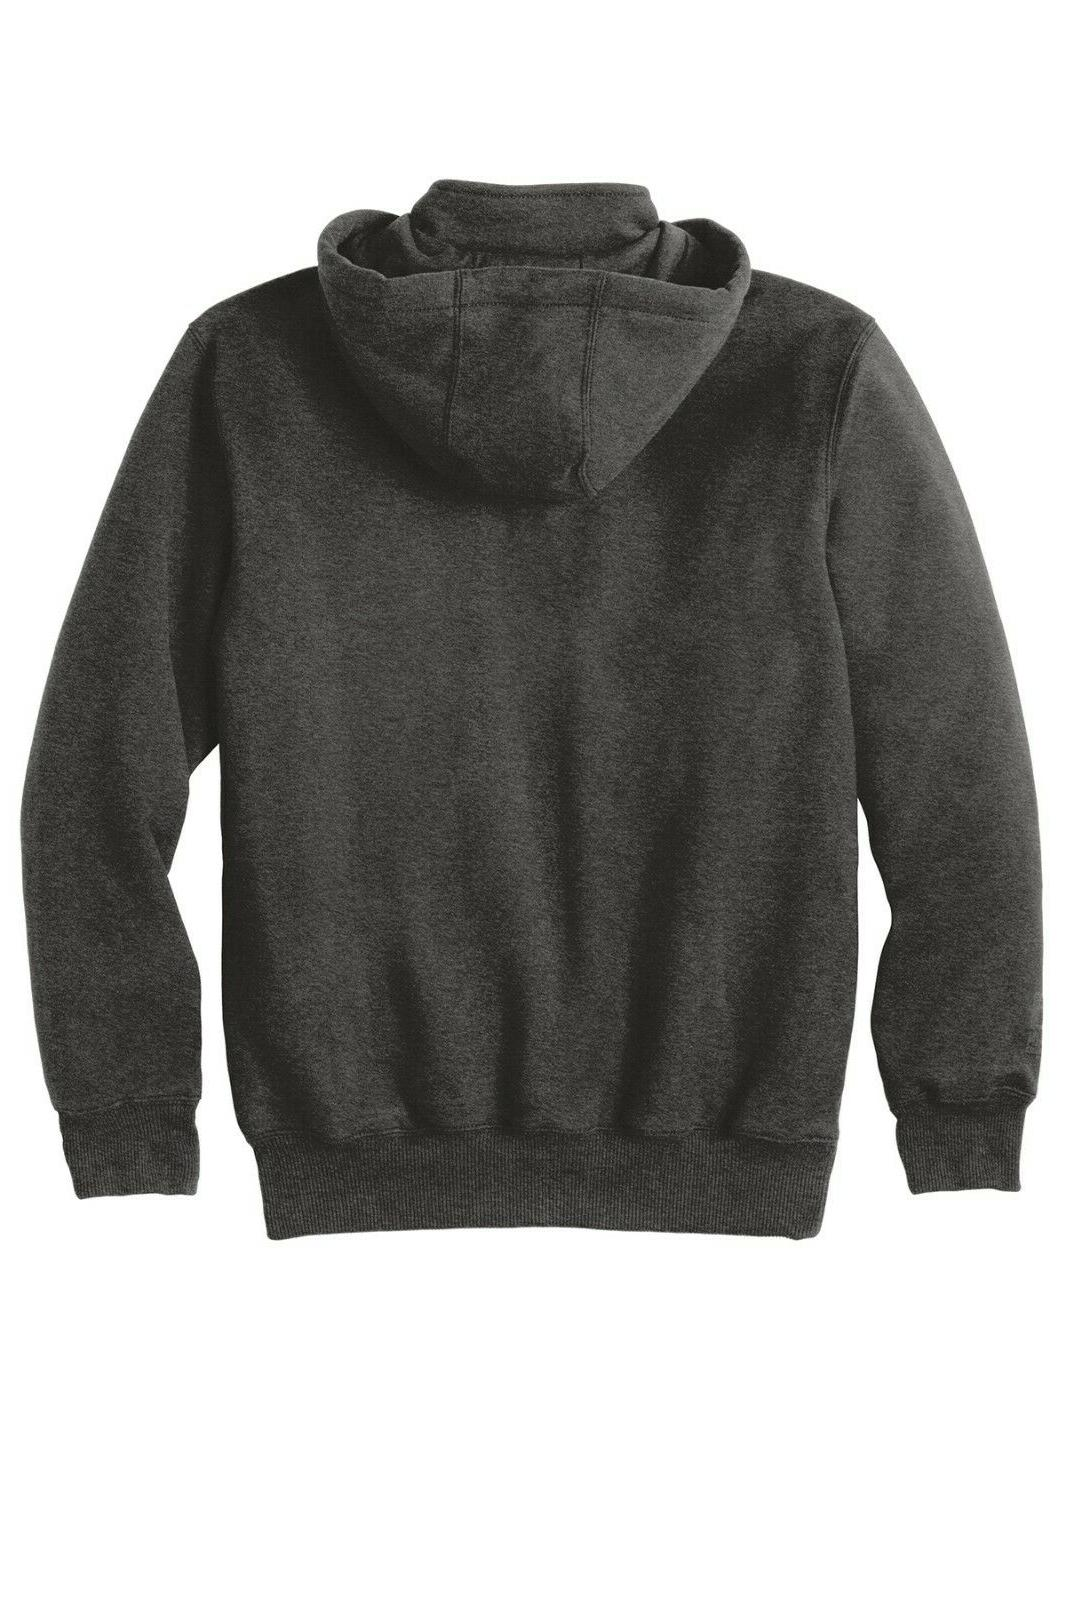 Carhartt Men's Heavyweight Quarter Zip Sweatshirt